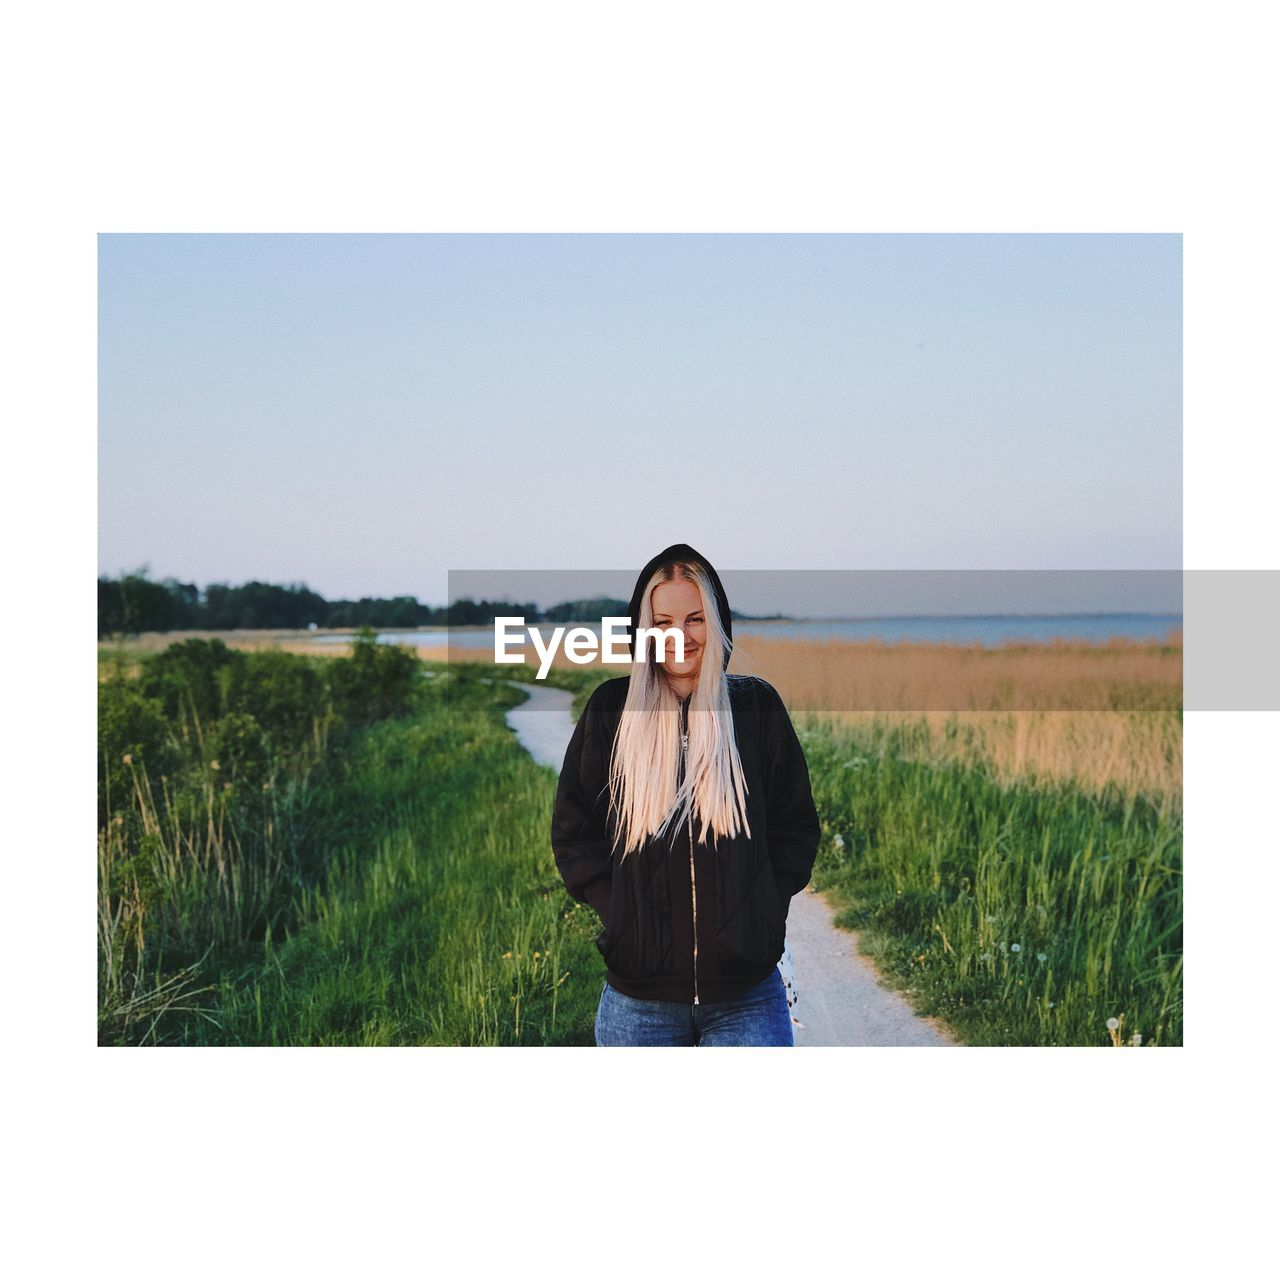 real people, one person, leisure activity, sky, landscape, portrait, lifestyles, land, looking at camera, field, nature, grass, environment, plant, auto post production filter, young adult, standing, front view, scenics - nature, outdoors, hairstyle